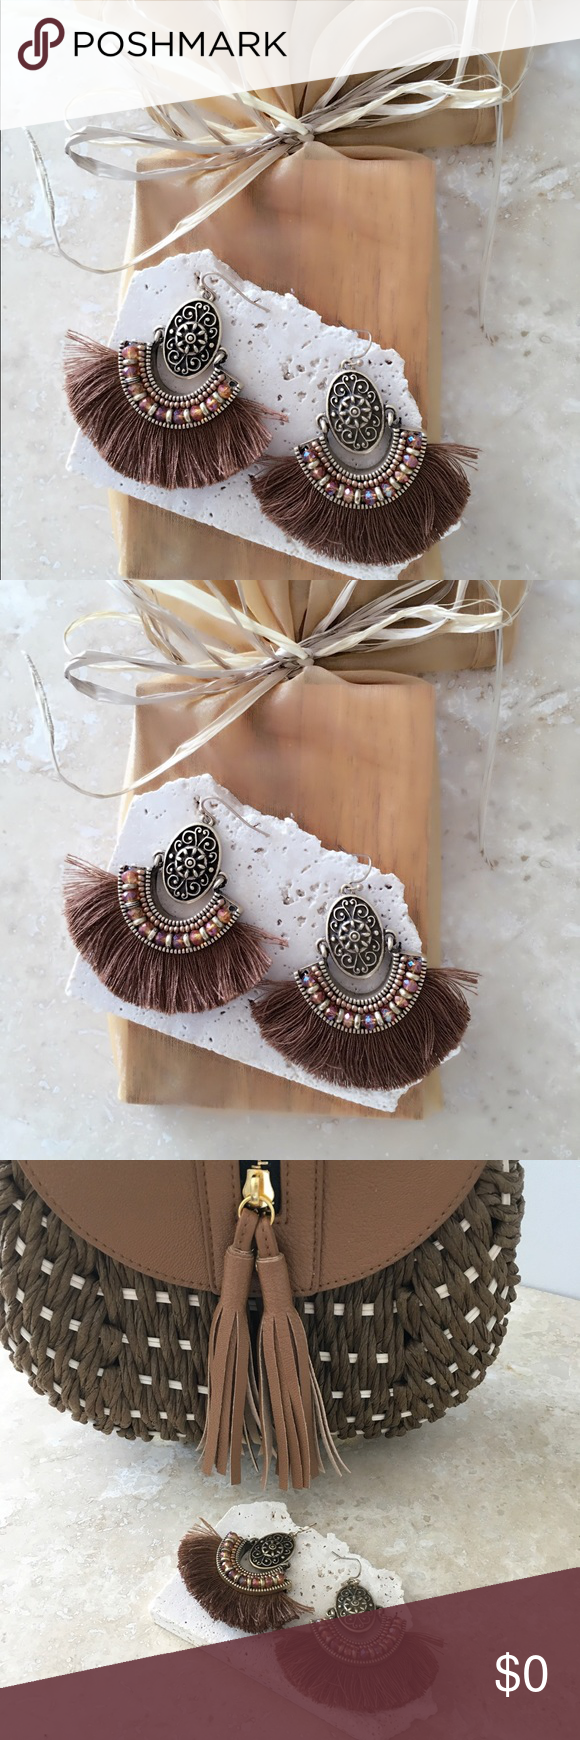 """🍁BRAND NEW🍁Olga Brown Fan Shaped Tassel Earrings 🍁BRAND NEW🍁Olga Brown Fan Shaped Tassel Earrings  Gold earrings Fringed silky brown thread detail COLOR:  BROWN  Measures approx 2"""" dangling 2.5"""" W  Fish hook closure   FREE WITH PURCHASE: Cute little organza drawstring pouch for storage or for gifting.    🛍Bundle & Save!! 10% 2+ items  ✅No Trades, Thank you. Jewelry Earrings"""